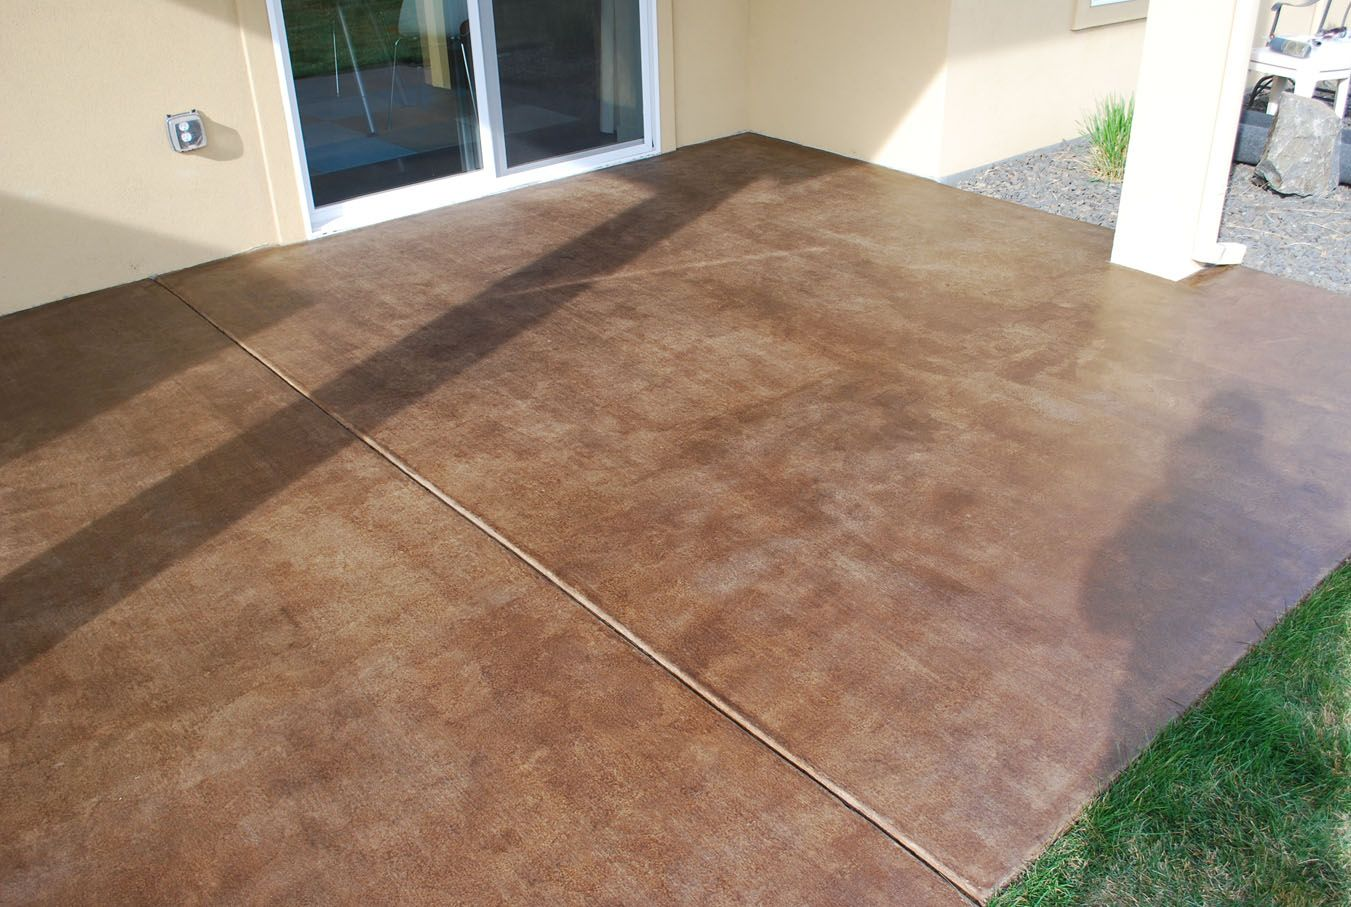 Incroyable DIY Project: How To Stain A Concrete Patio | The Garden Glove